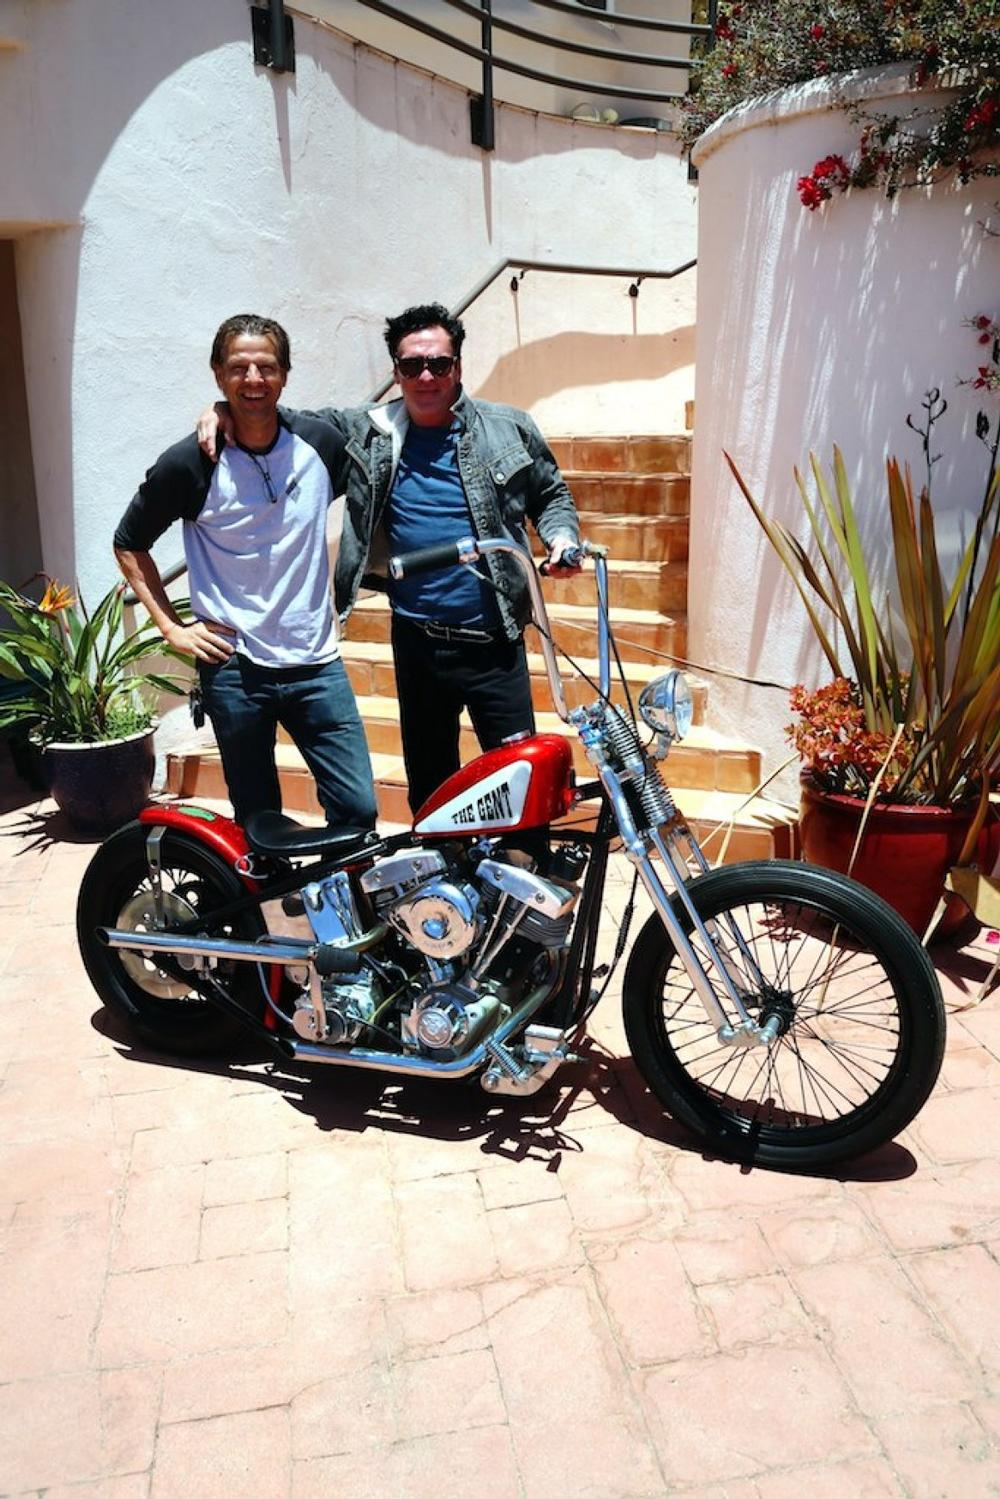 The Gent Built By Movie Bikes Of U S A